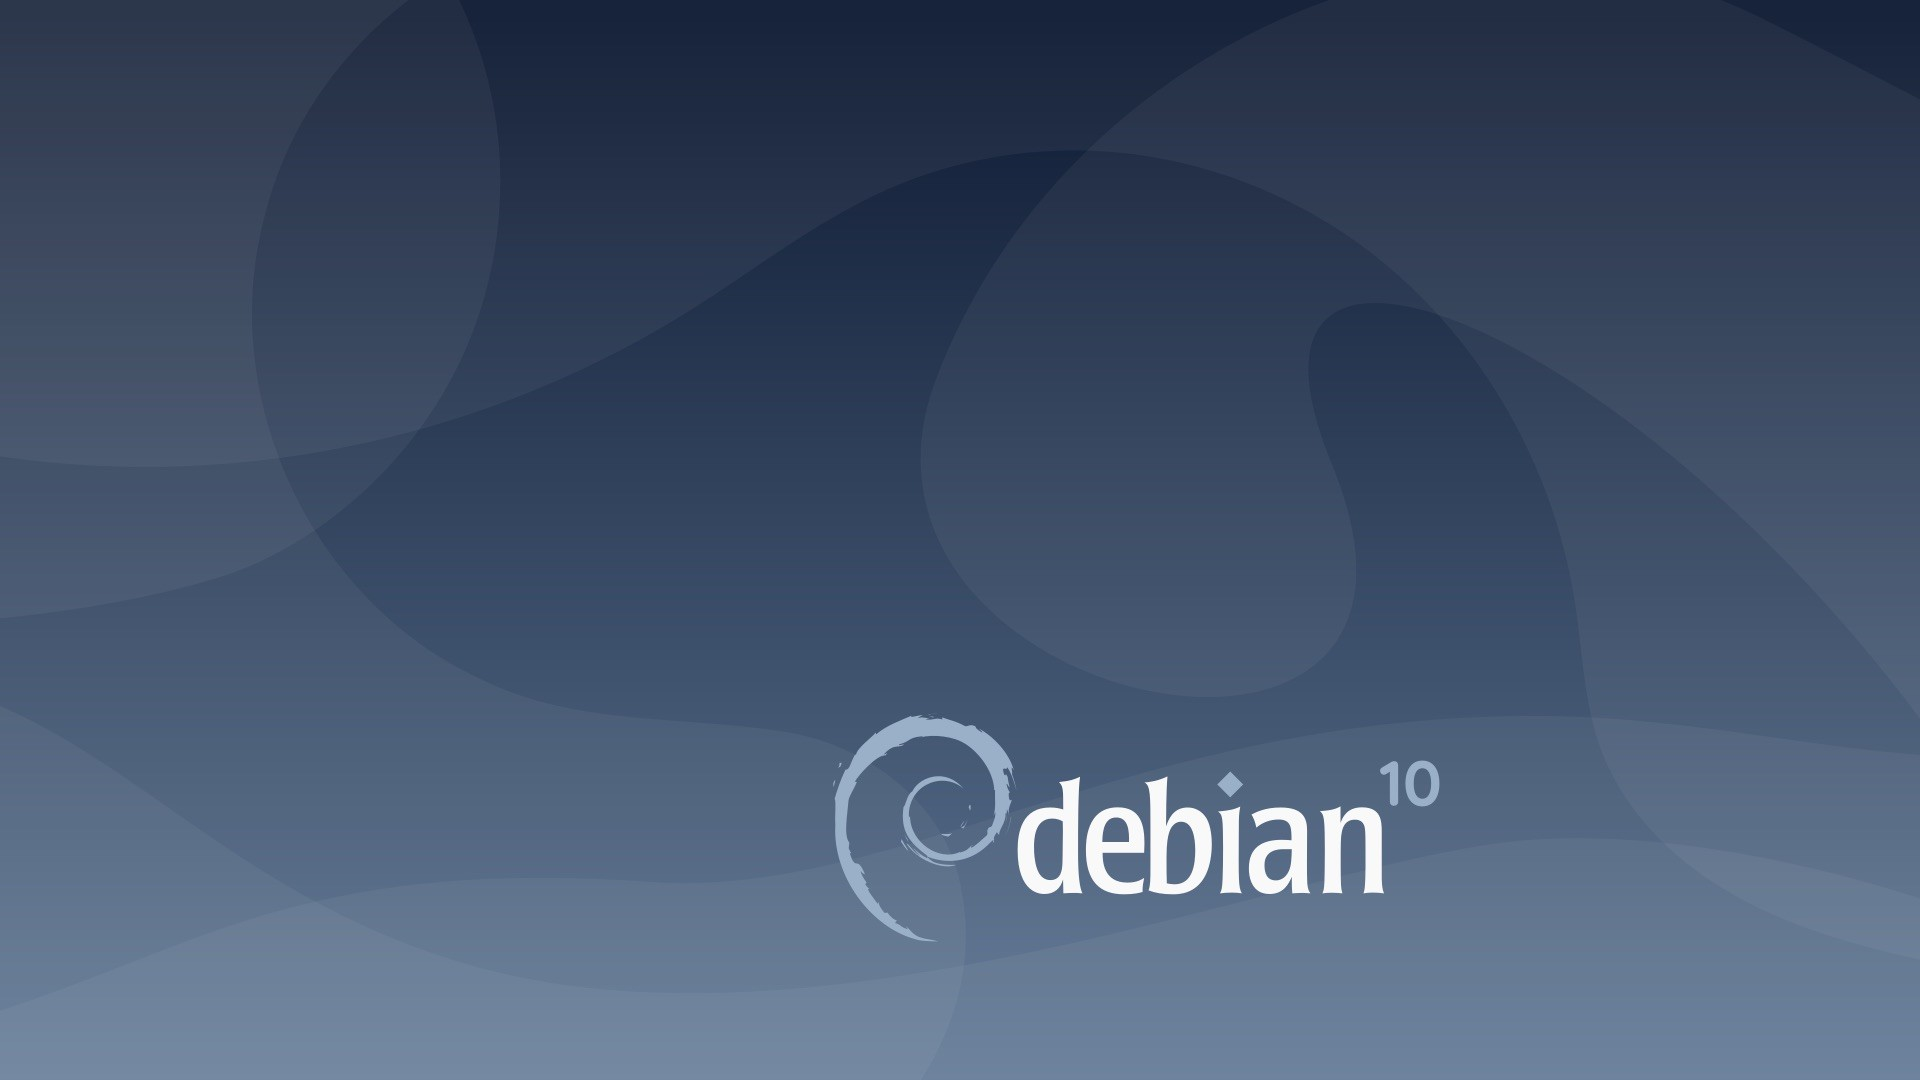 Debian GNU/Linux 10.6 Released with Over 30 Security Updates, 53 Bug Fixes - 9to5Linux